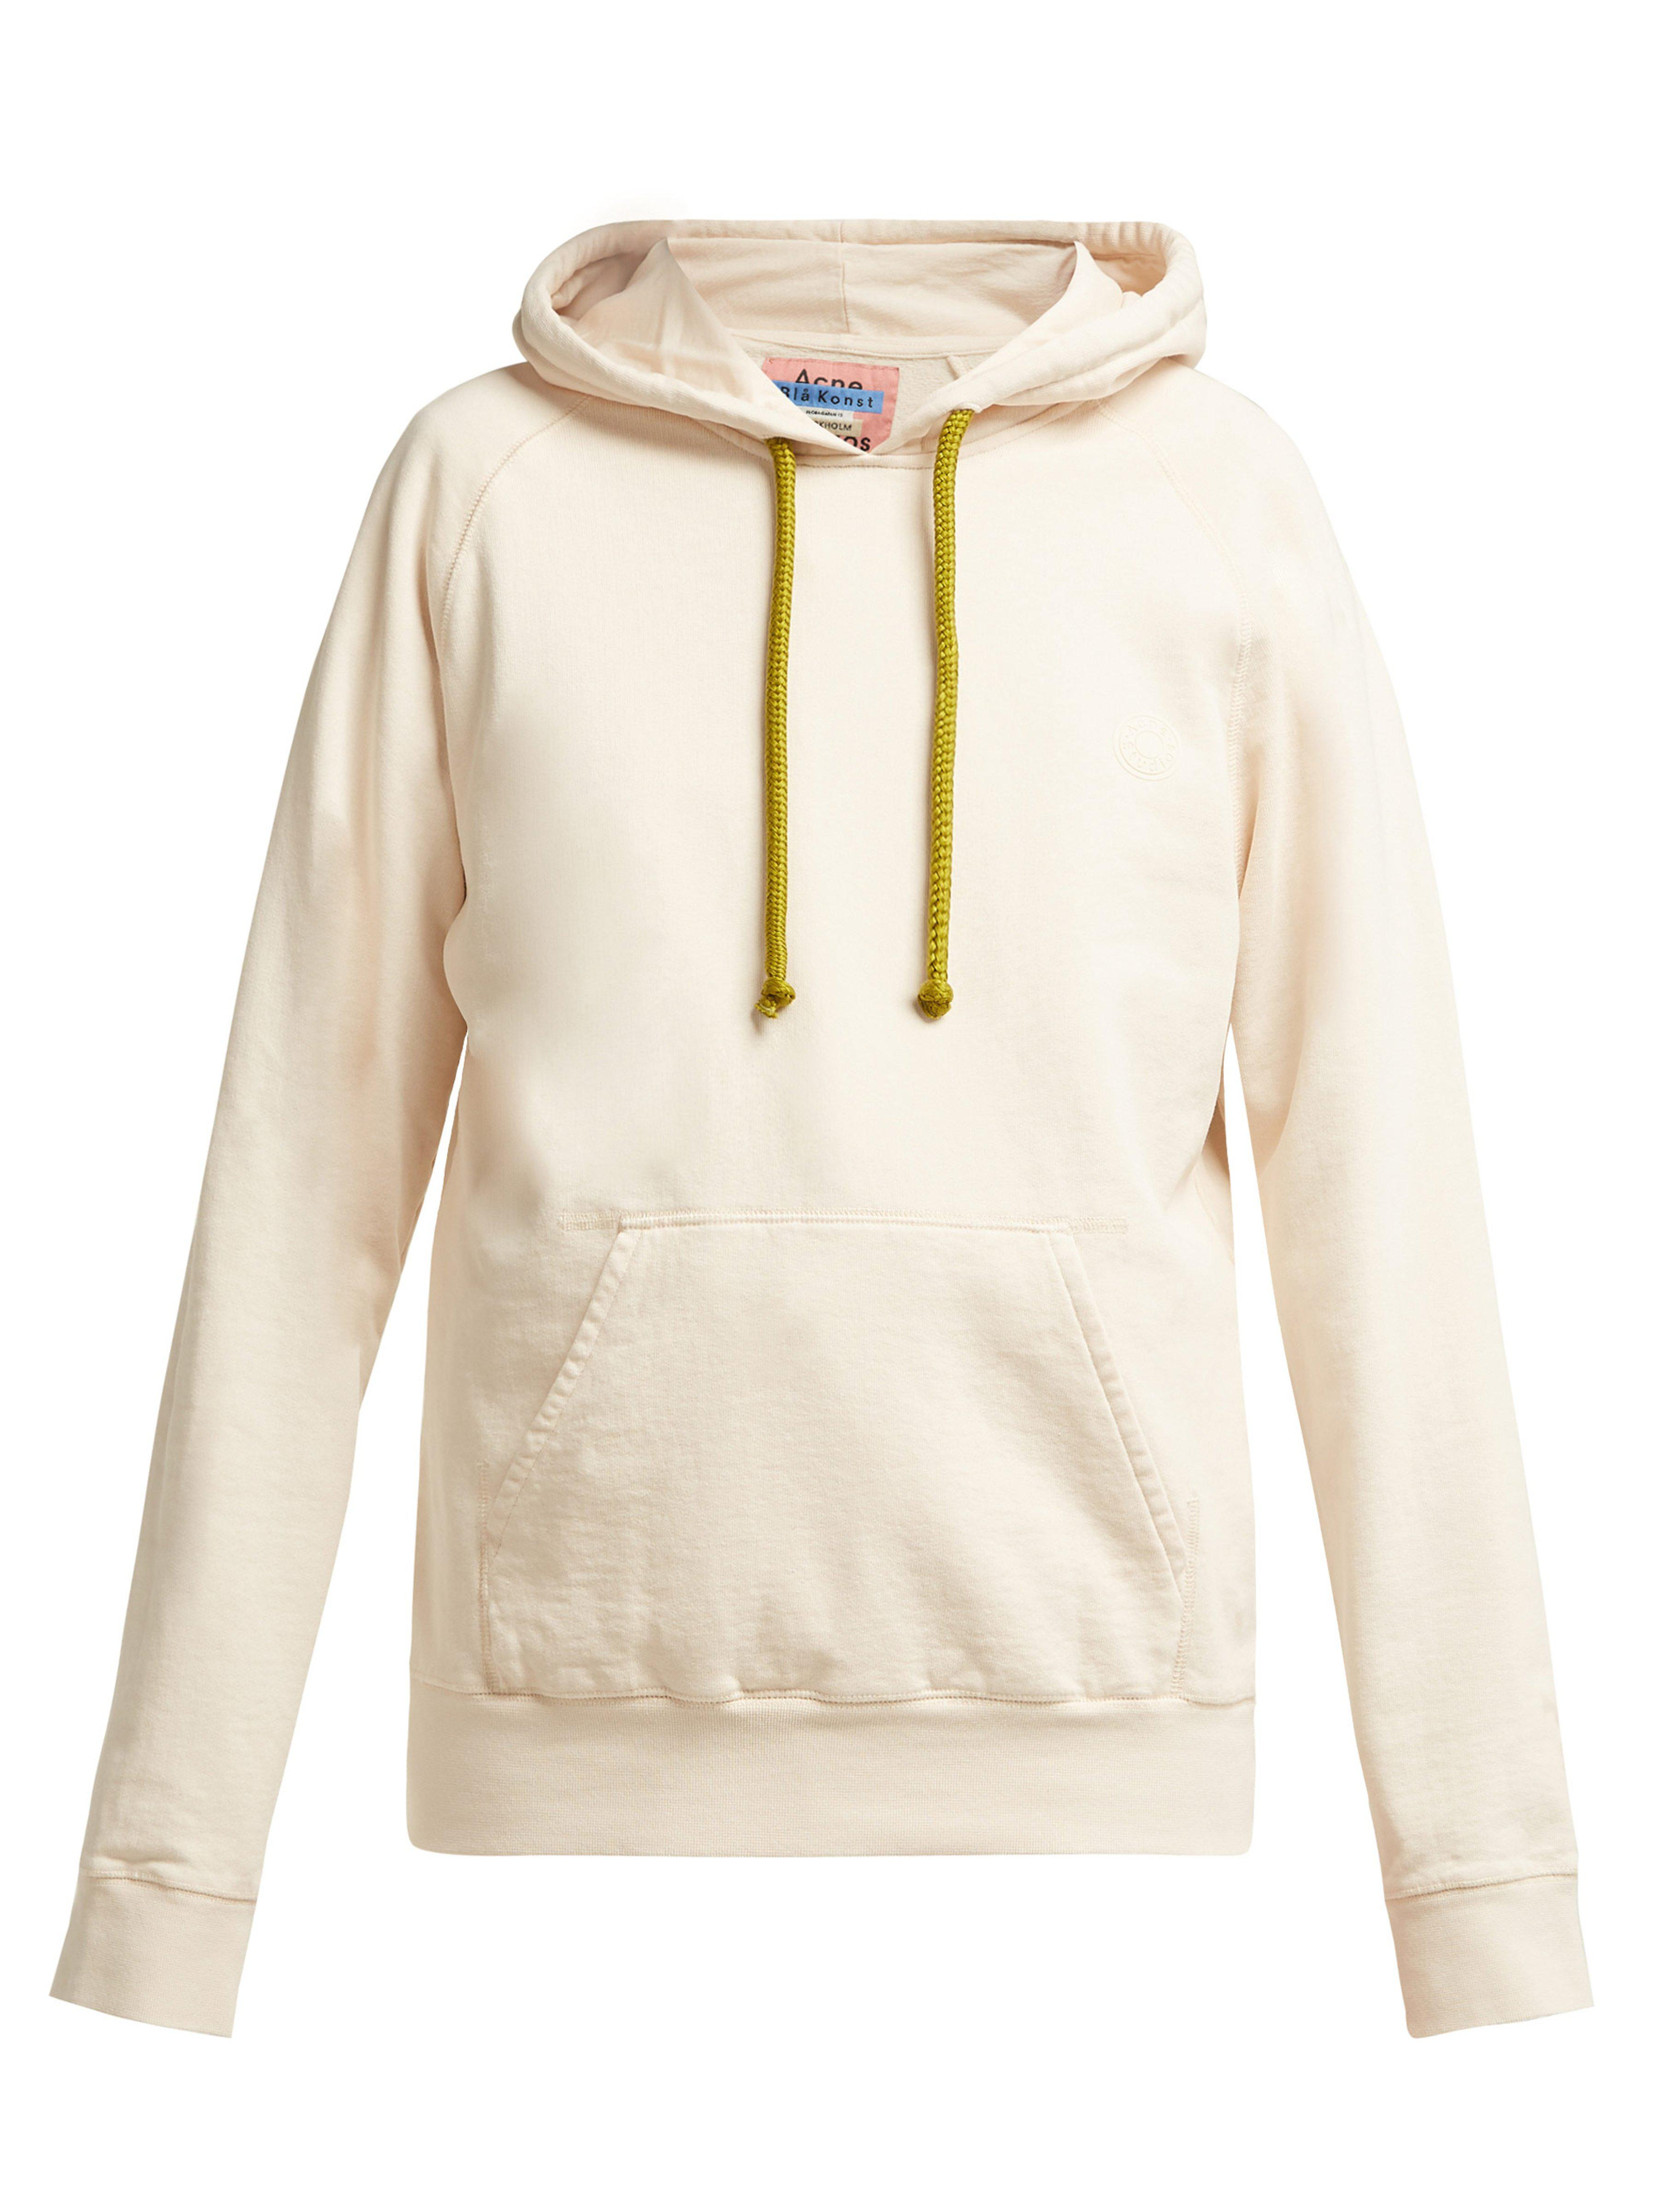 Acne Studios Hooded Cotton Sweatshirt in Natural - Lyst 12866c252f